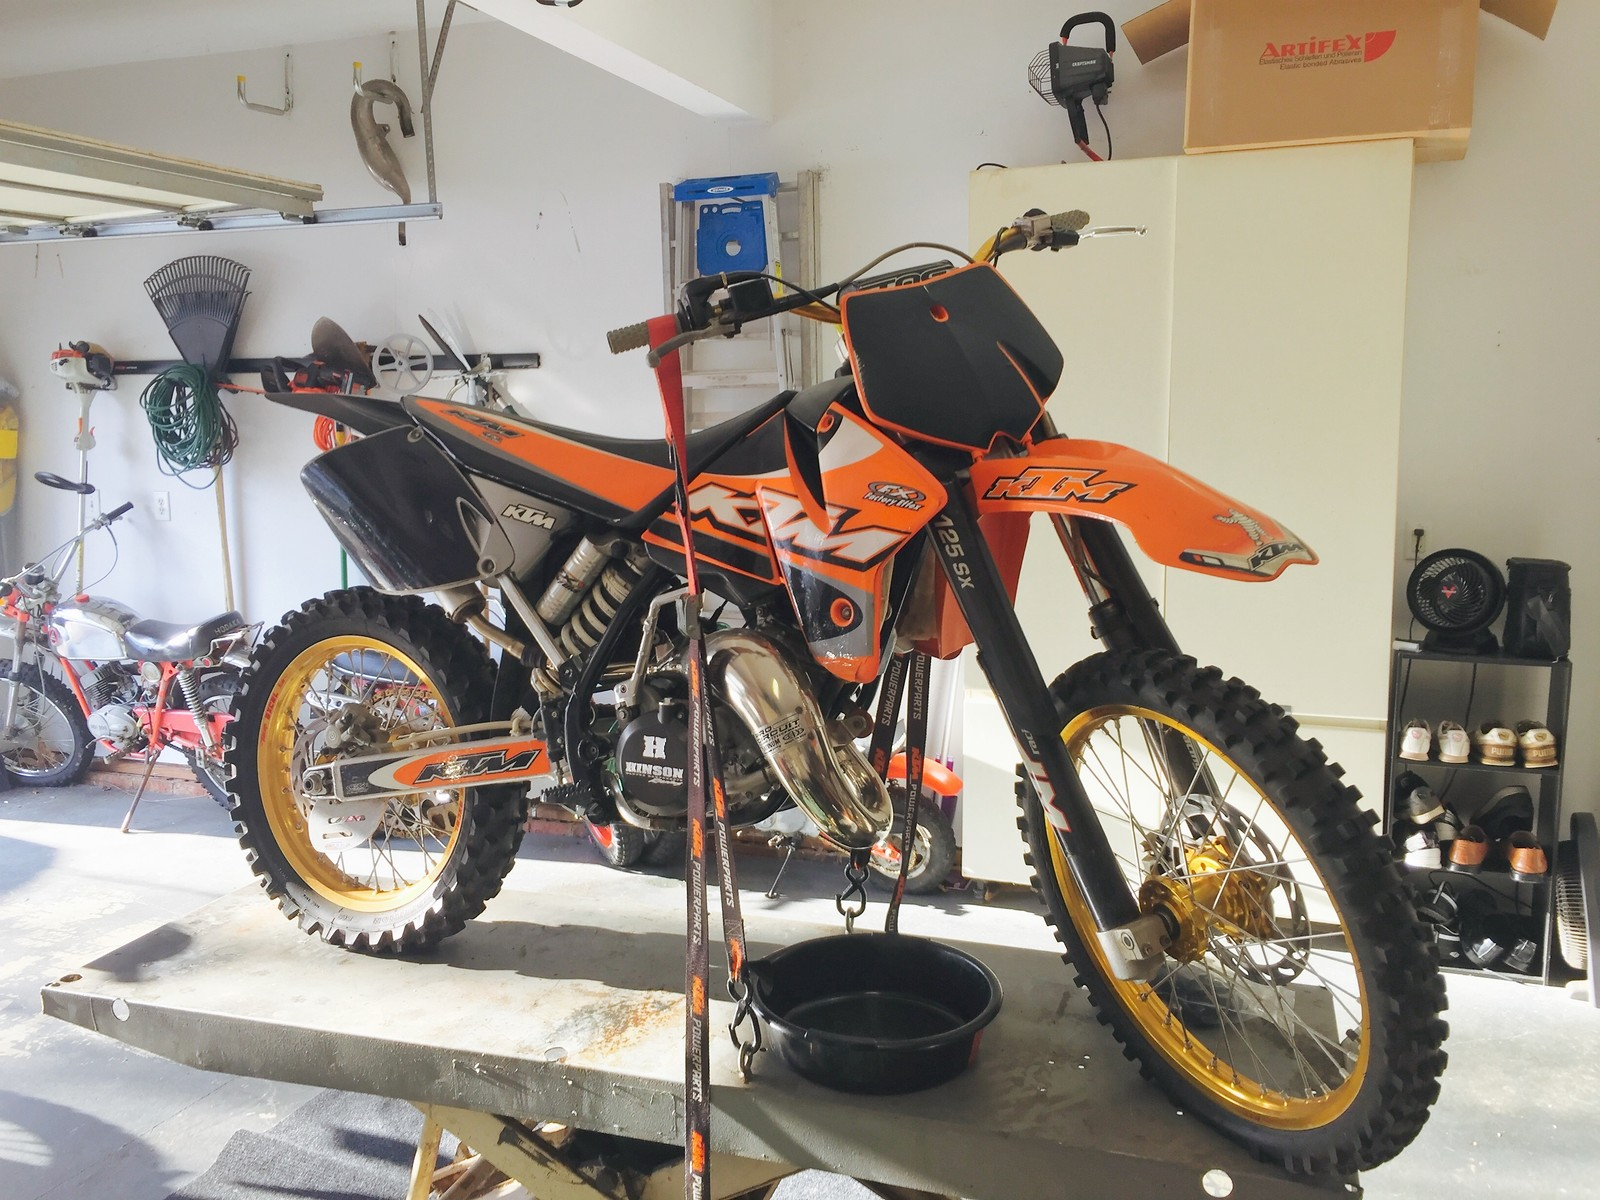 Help me find: Trick '98'-99 era KTM 125 parts (VHM, carbon